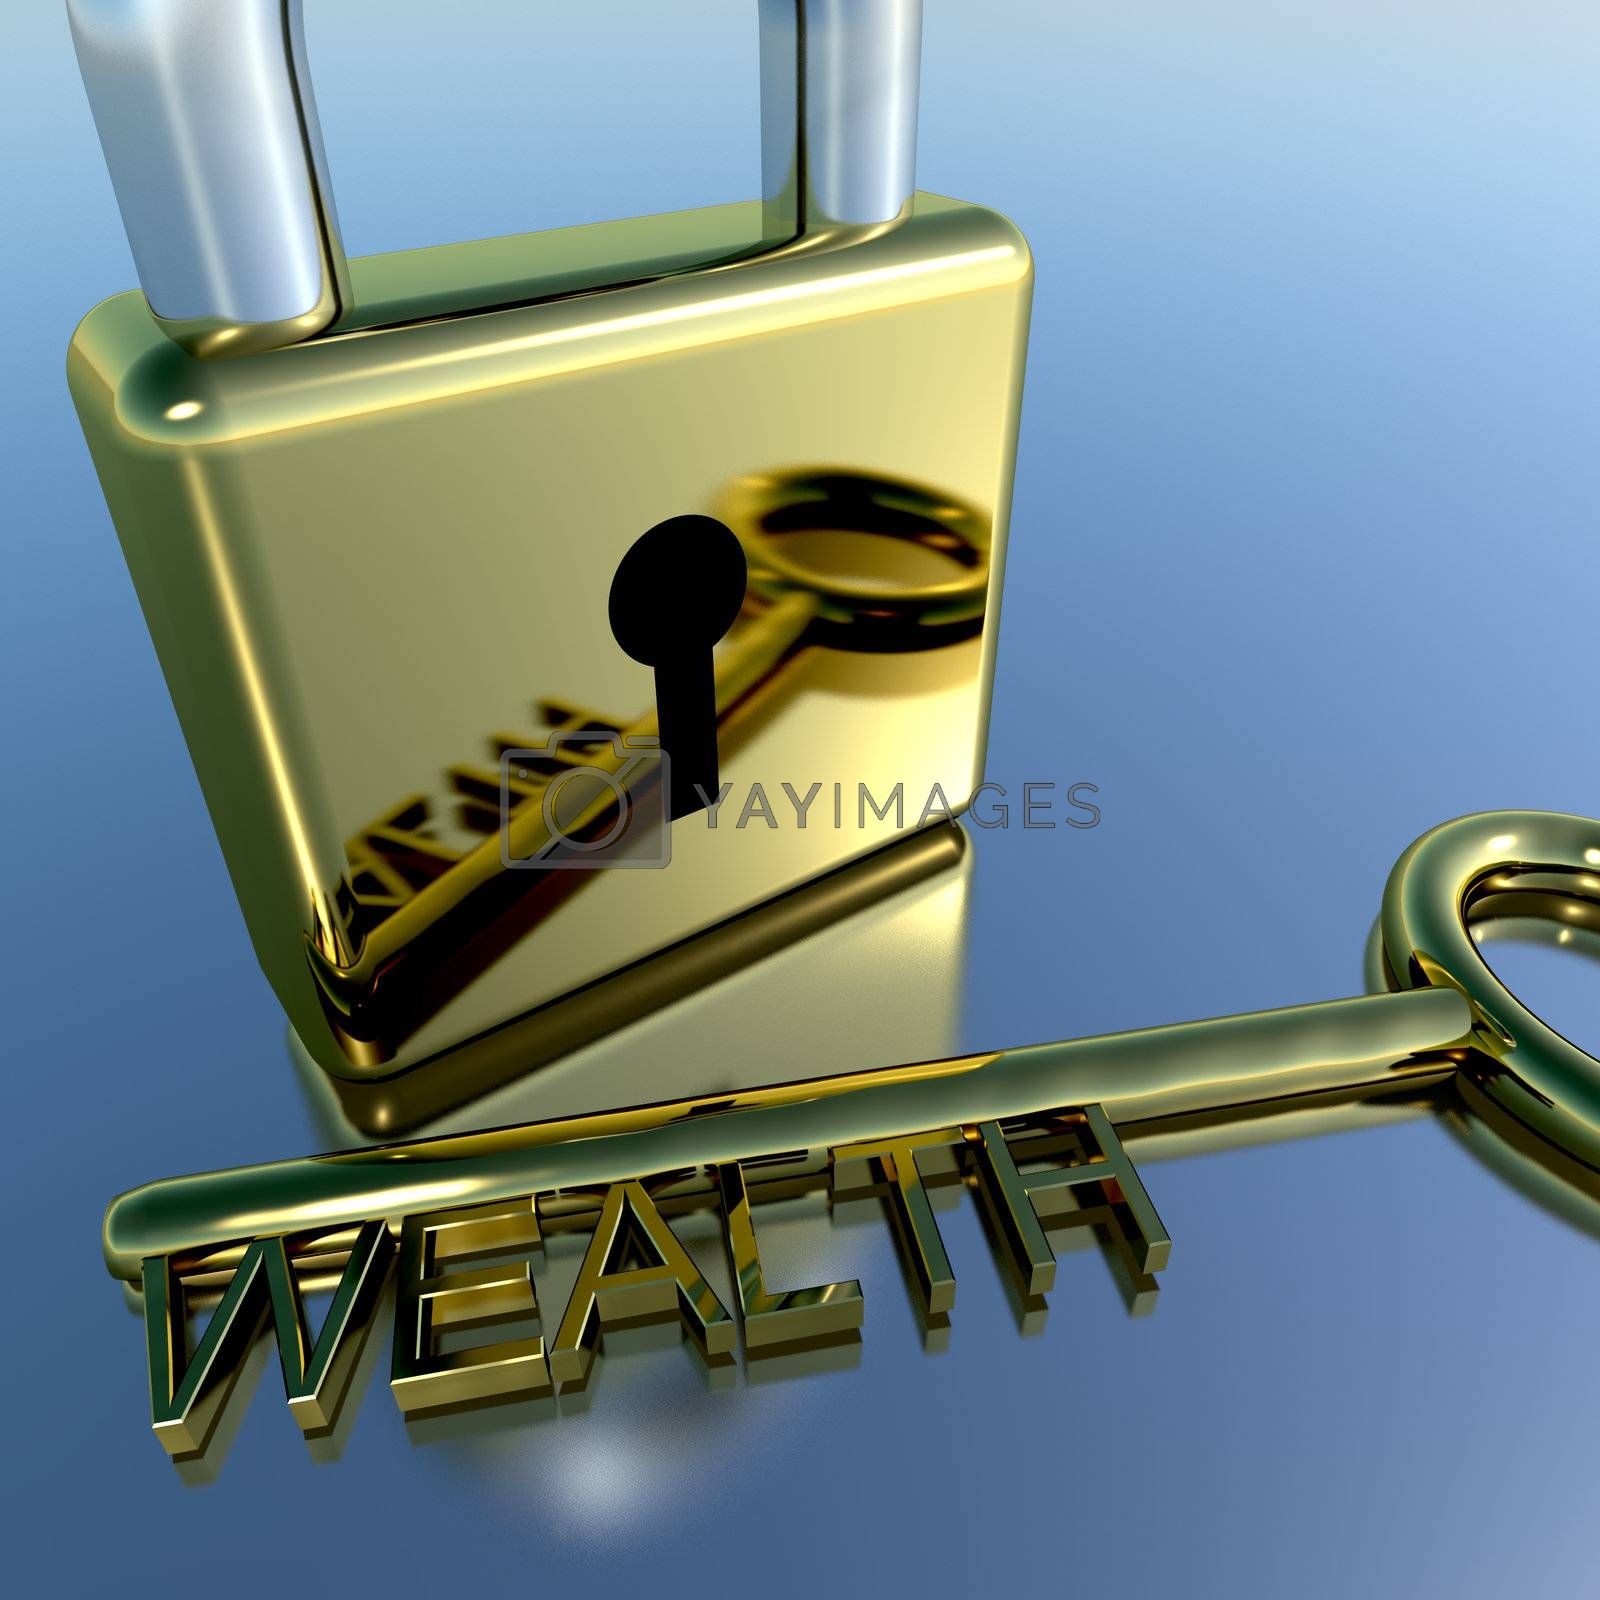 Padlock With Wealth Key Showing Riches Savings And Fortunes